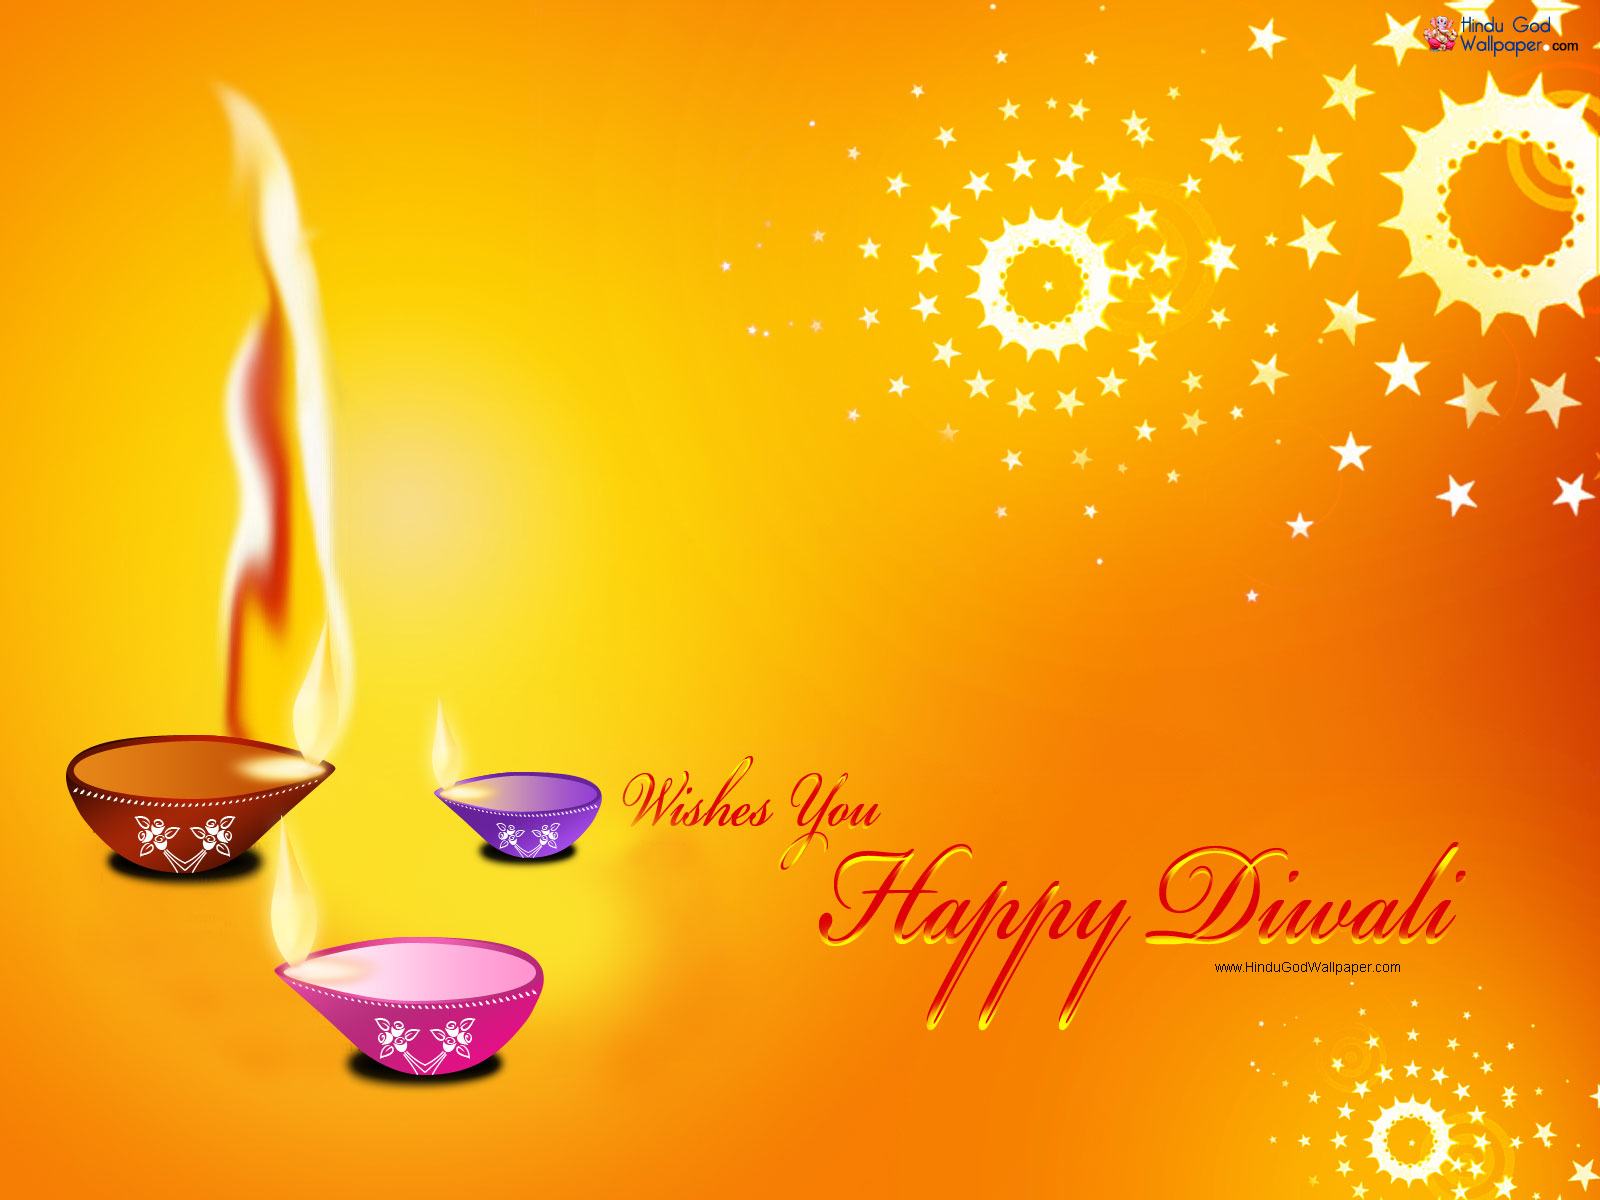 happy diwali images | pictures | wallpaper | photos free hd